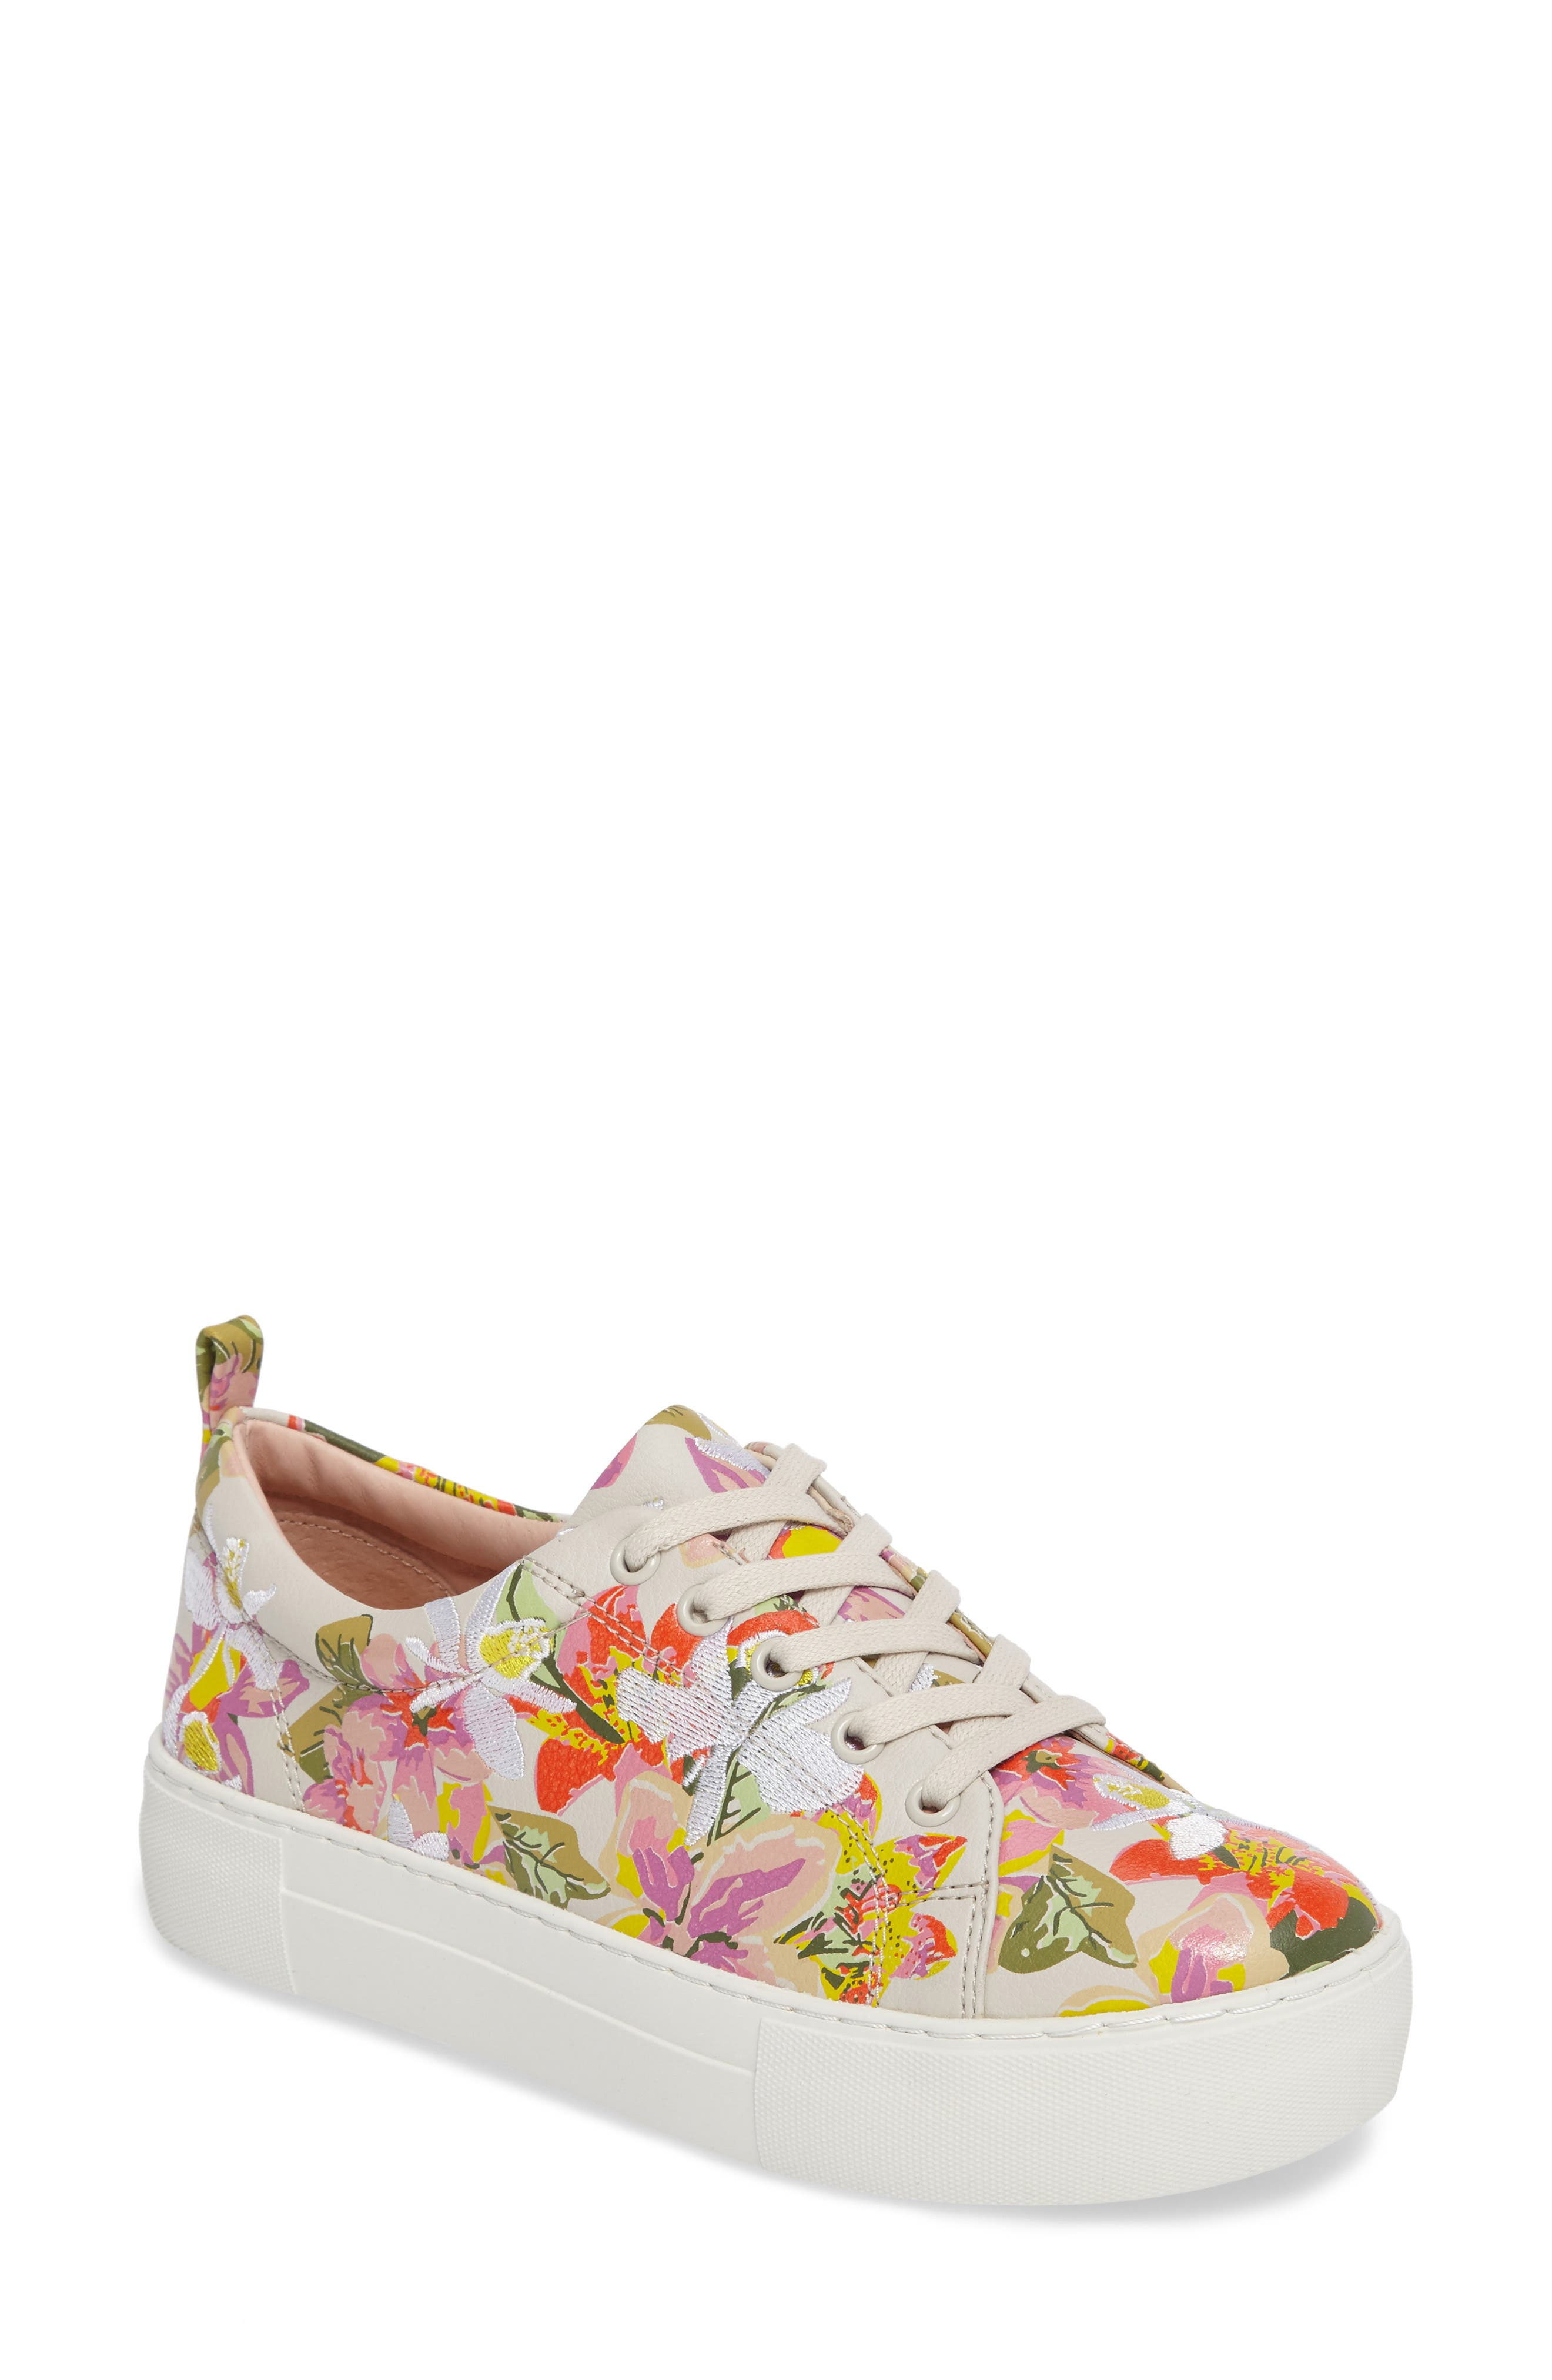 Appy Embroidered Platform Sneaker,                         Main,                         color,